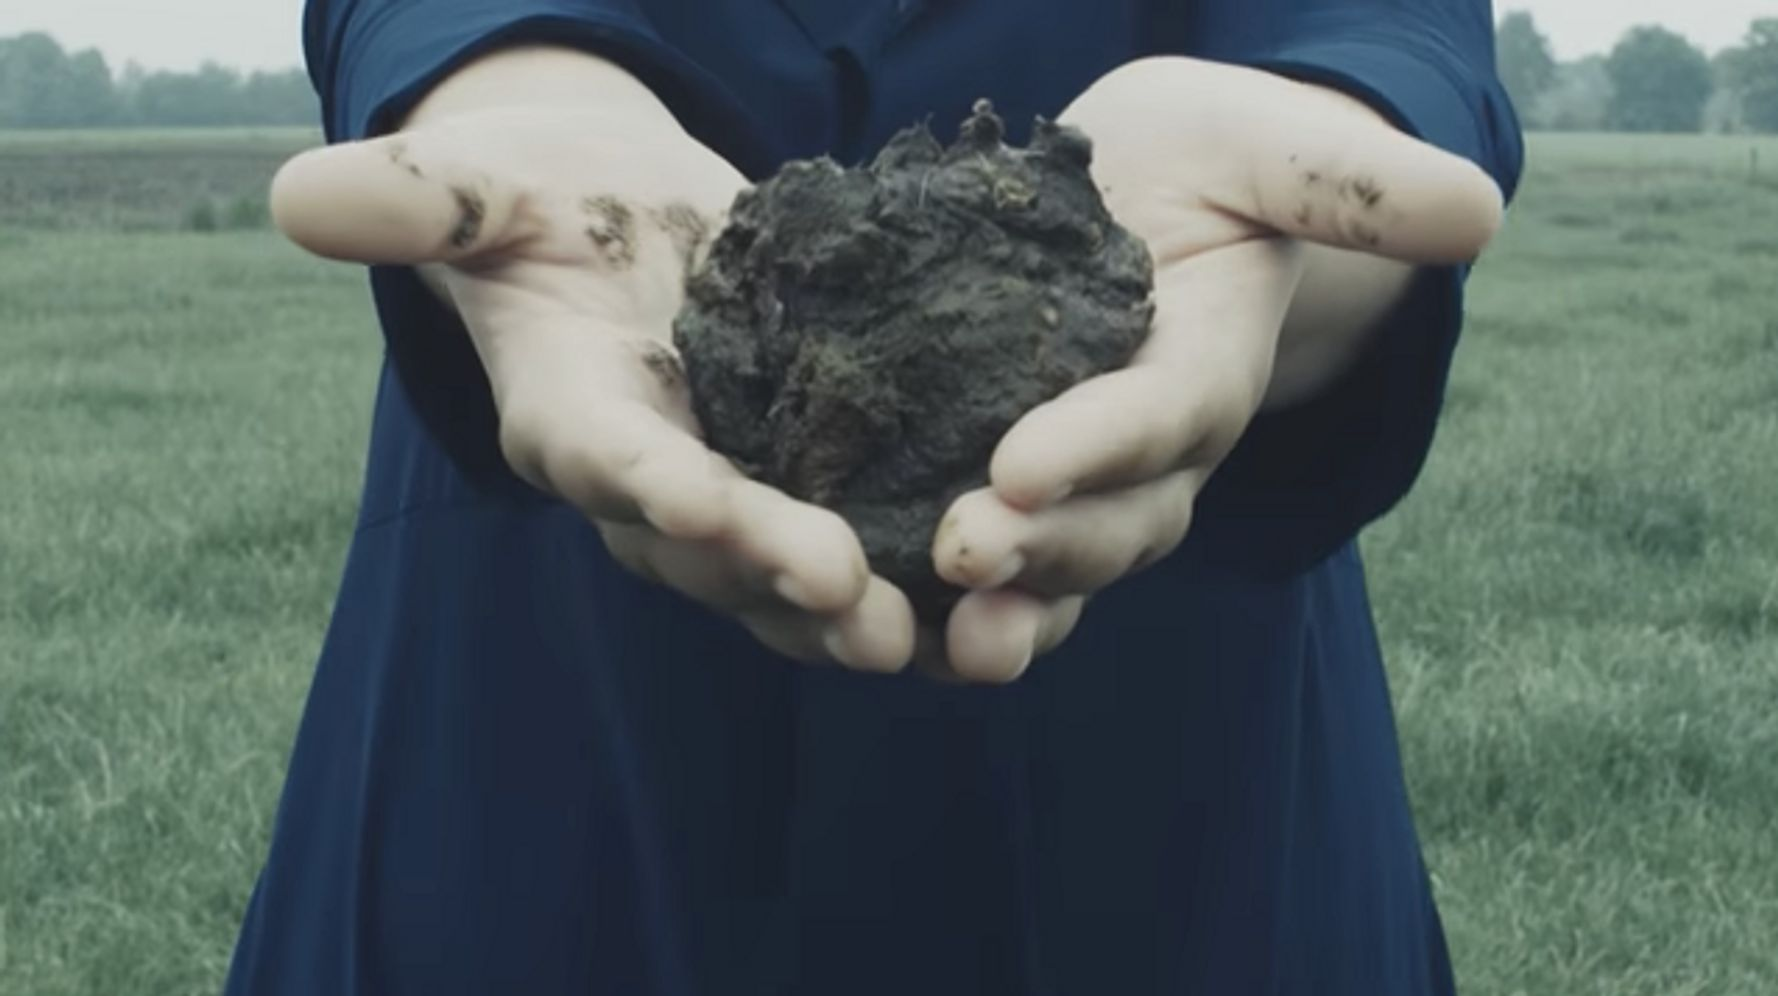 We're One Step Closer To Wearing Clothing Made From Poop